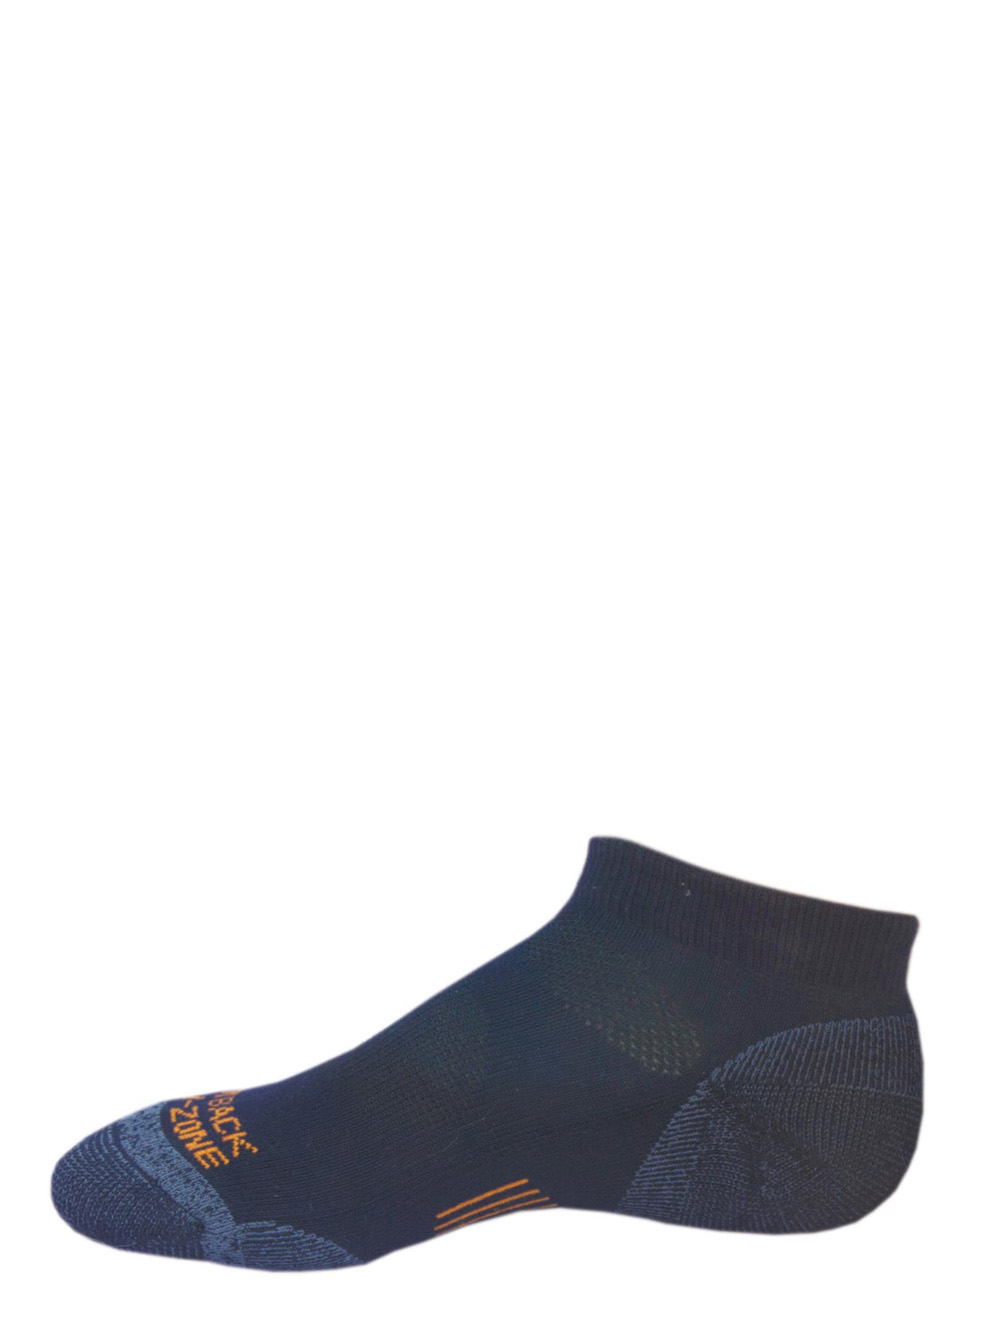 Outback Trading Womens Ankle Sock